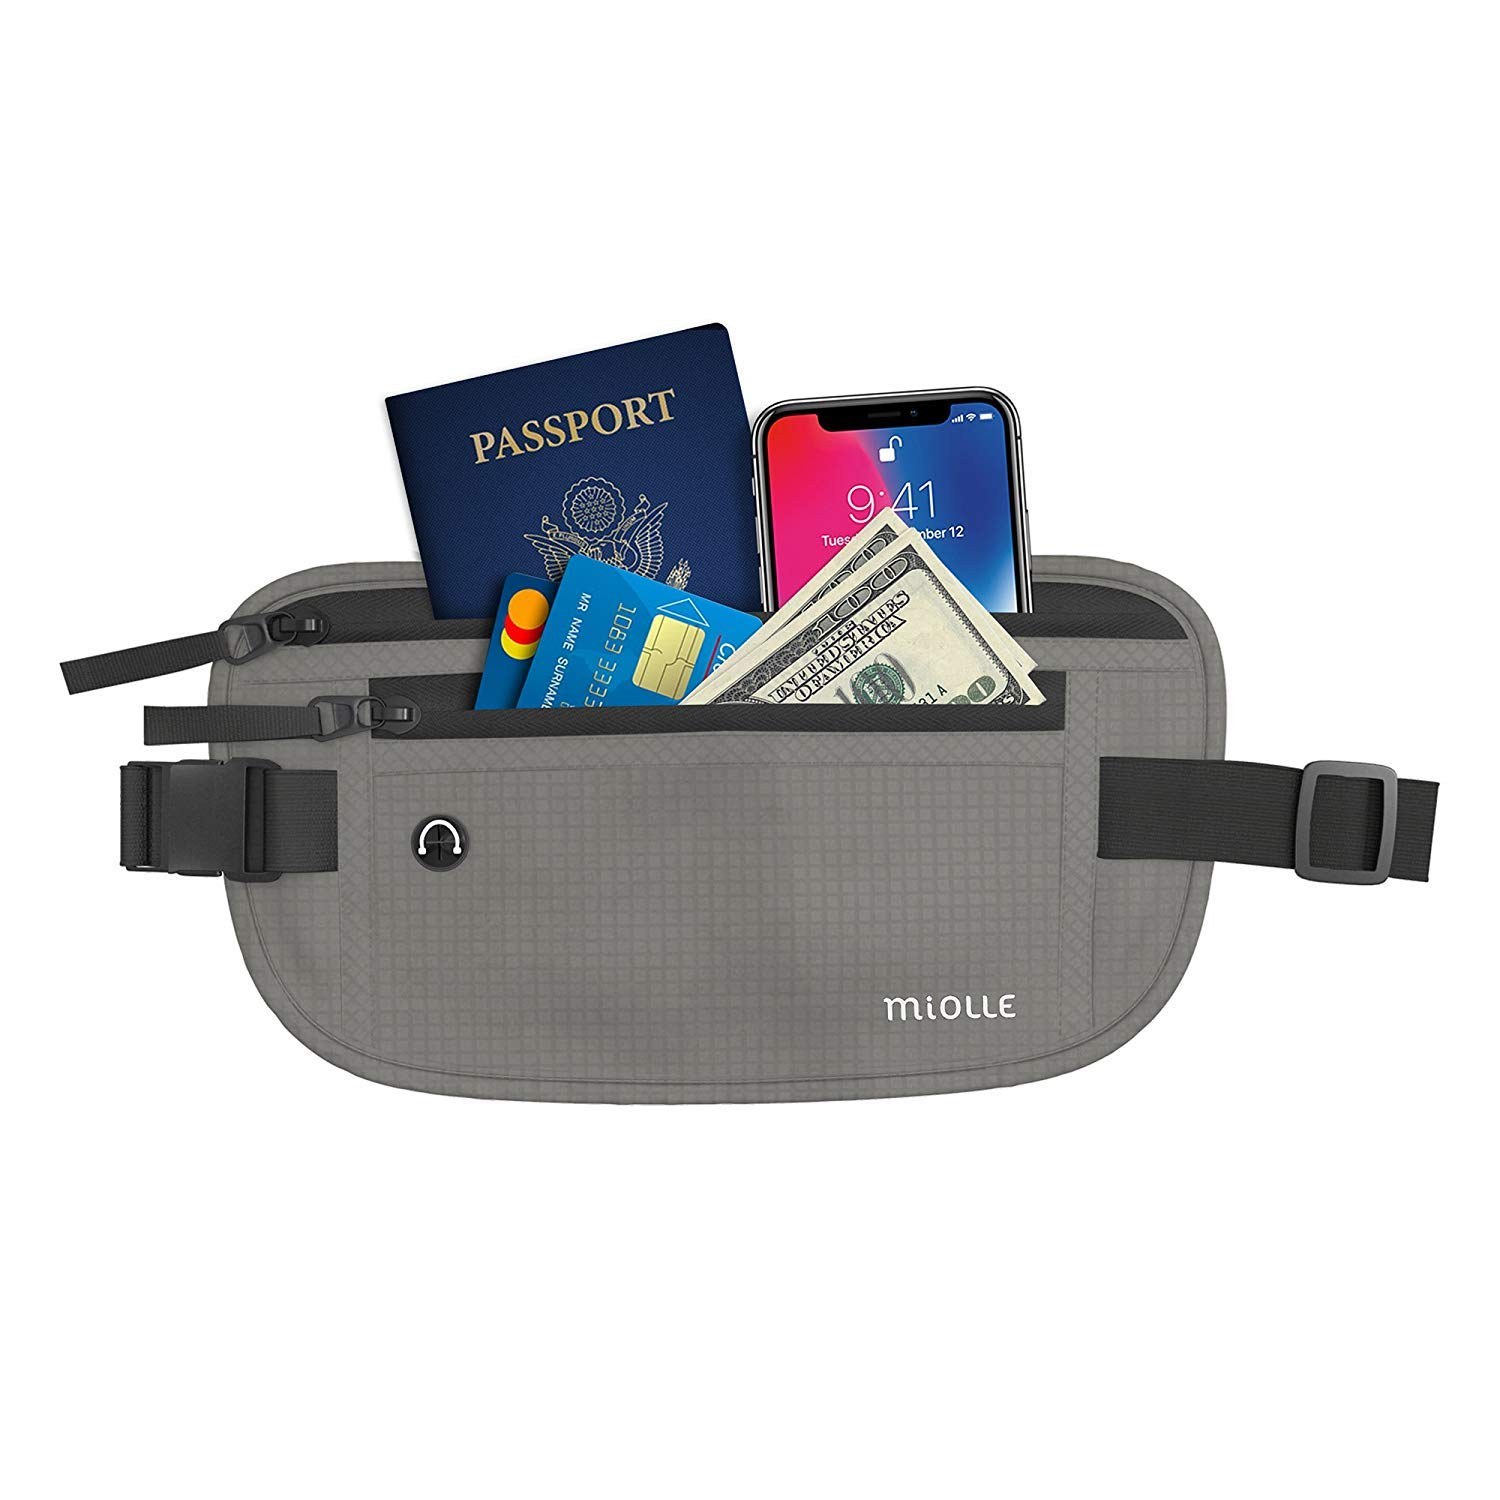 Money Belt for Travel RFID Waterproof - Running Pack - Waist Pack - Hidden Wallet - Travel Wallet - Security Money Belts (black, 0.5 inch thick)